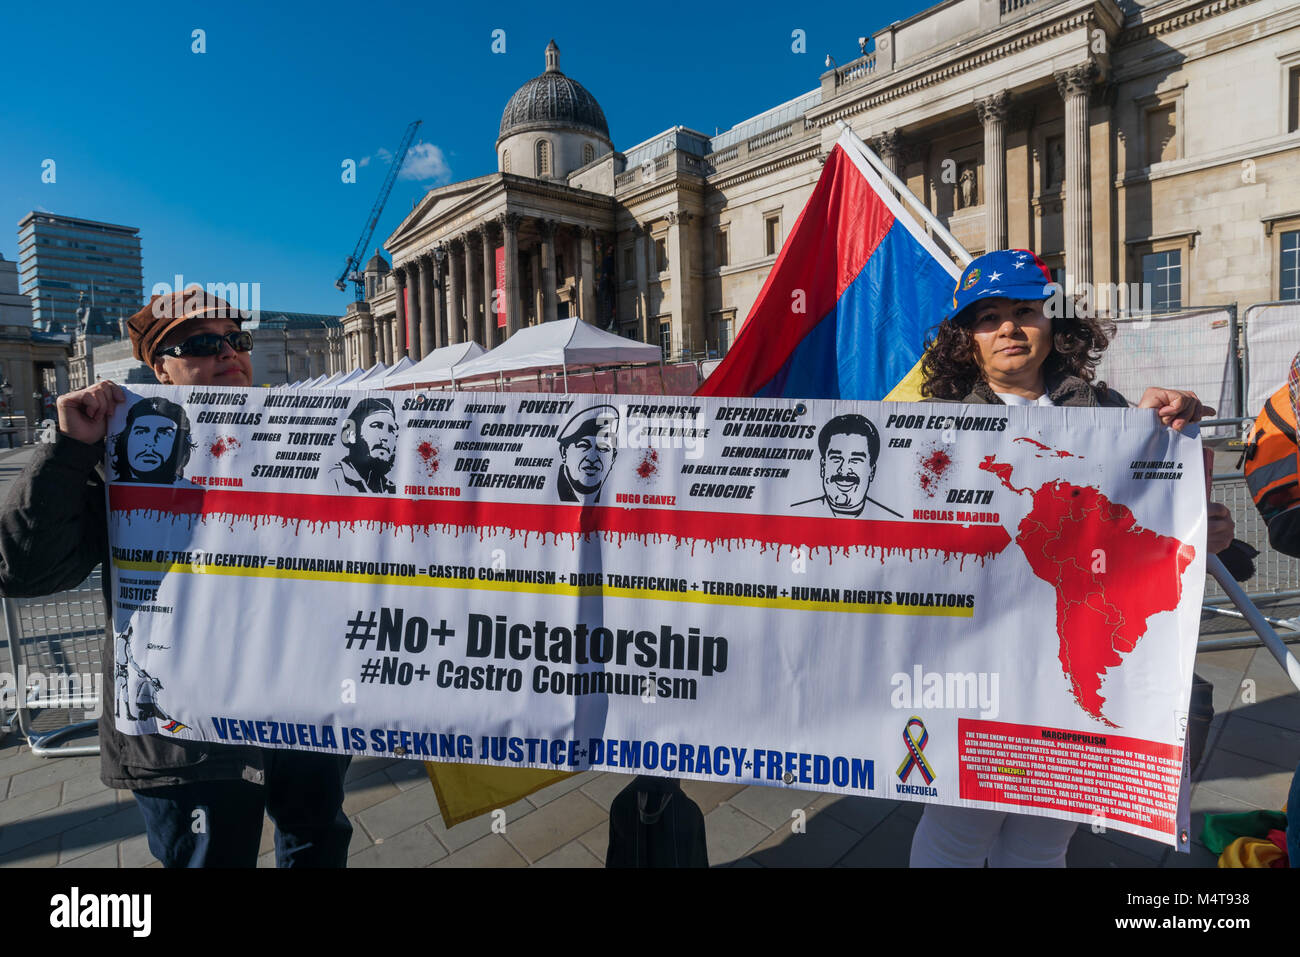 February 17, 2018 - London, UK. 17th February 2018. Bolivians protesting in Trafalgar Square were joined by two Stock Photo